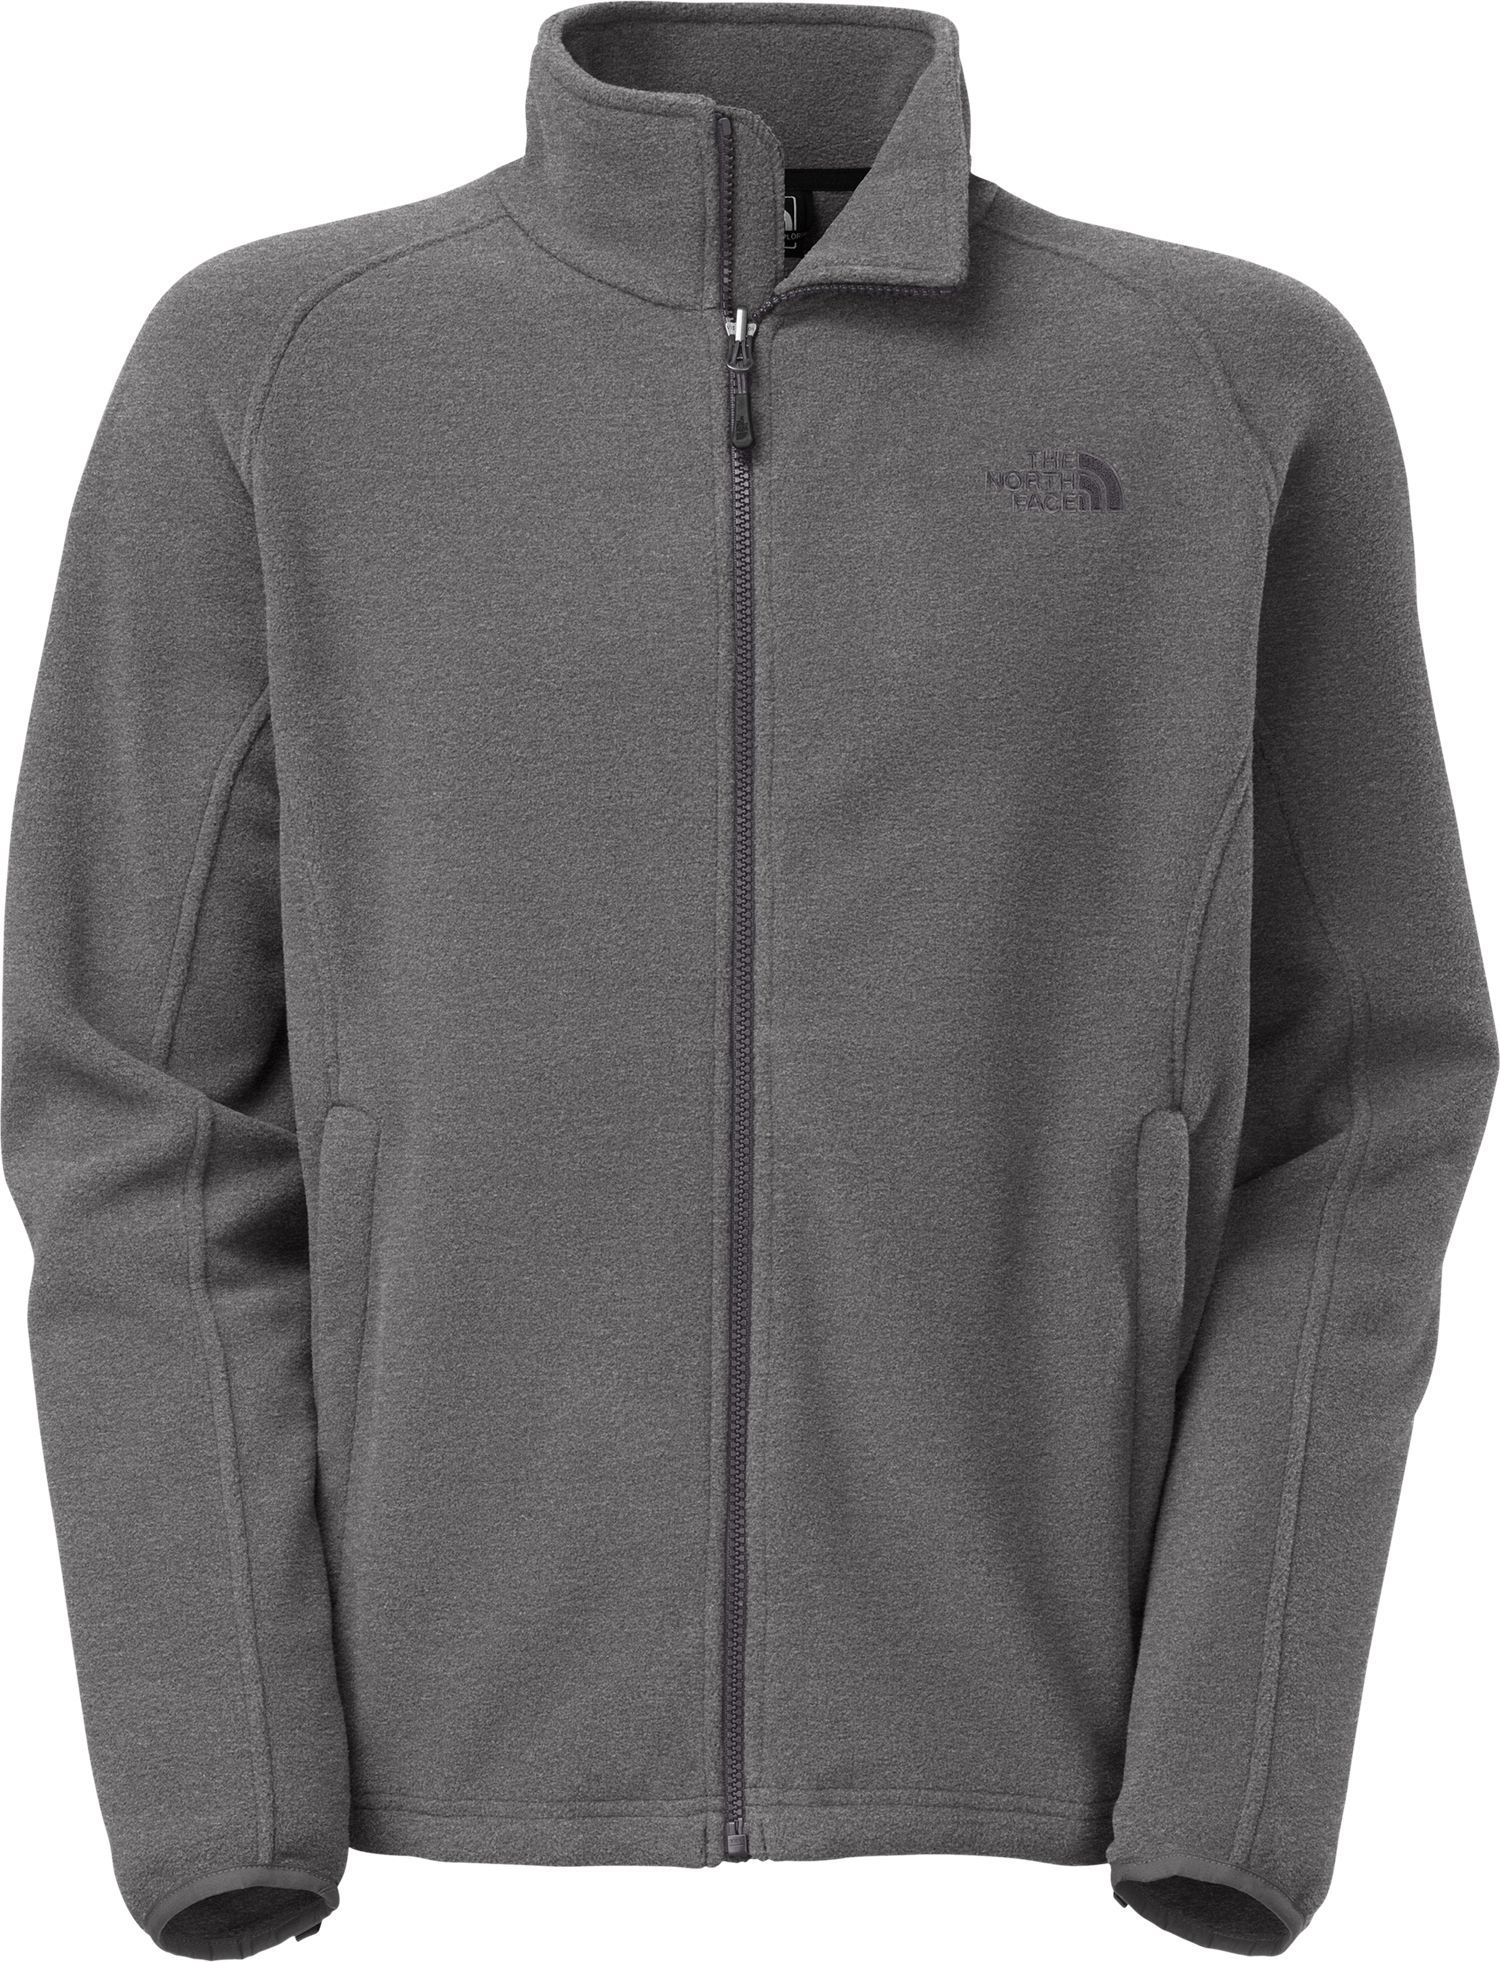 Men&39s Fleece Jackets &amp Sweaters | DICK&39S Sporting Goods